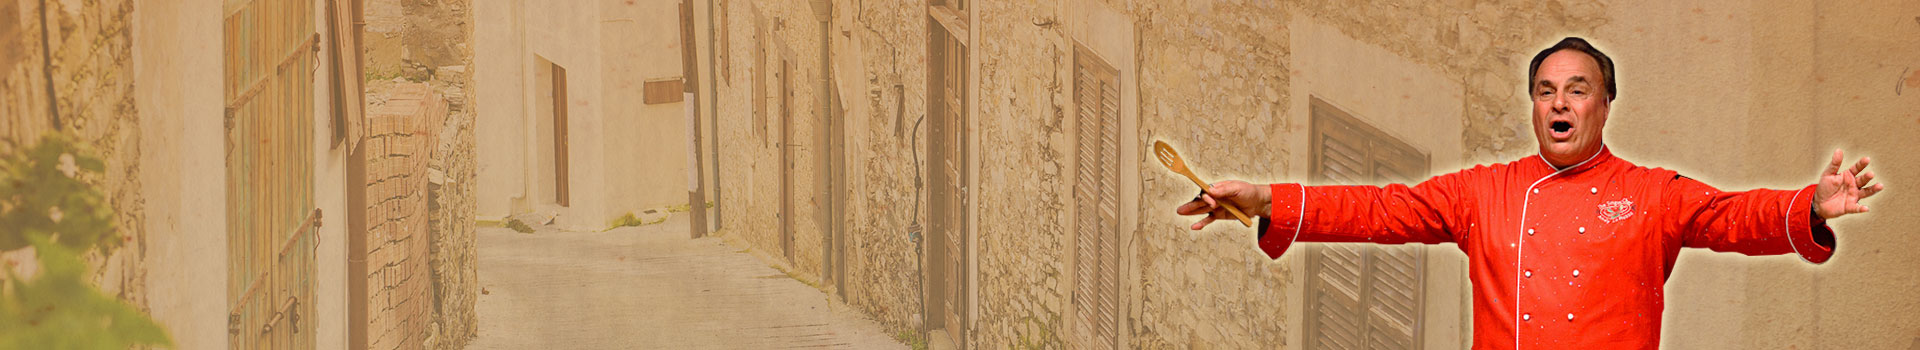 Old Italian street-behind Andy LoRusso